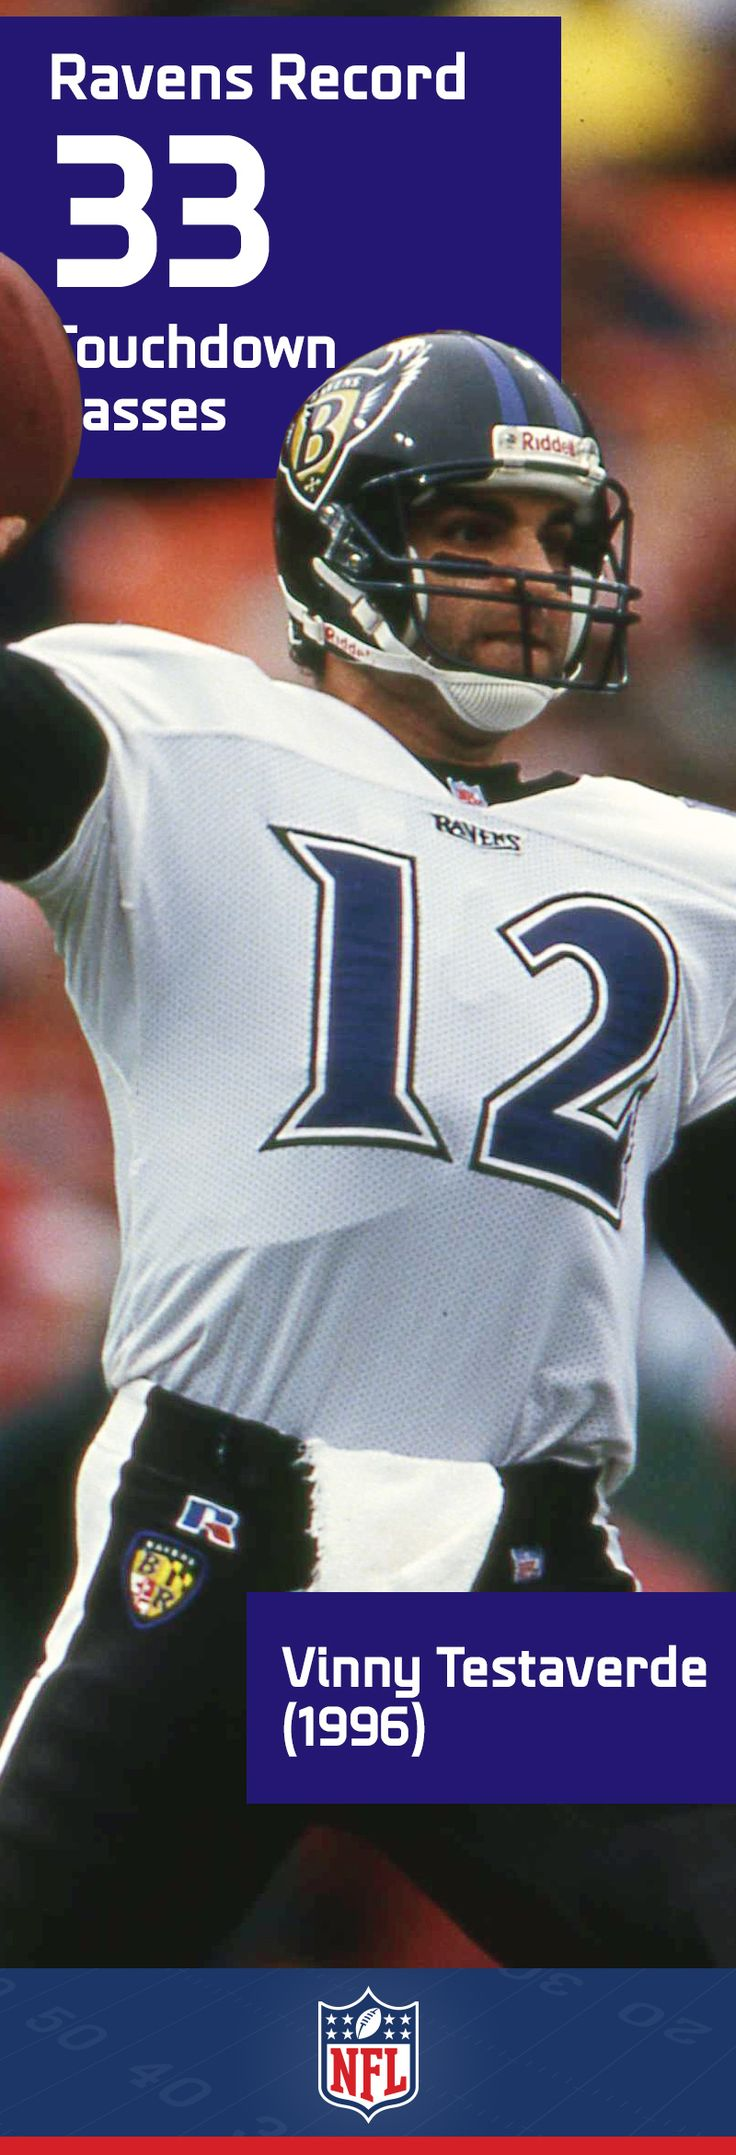 Vinny Testaverde racked up an amazing 21 seasons in the NFL, for an equally amazing 7 teams. One of his best performances though came in a Baltimore Ravens uniform, when he set the team record with 33 touchdown passes in 1996.